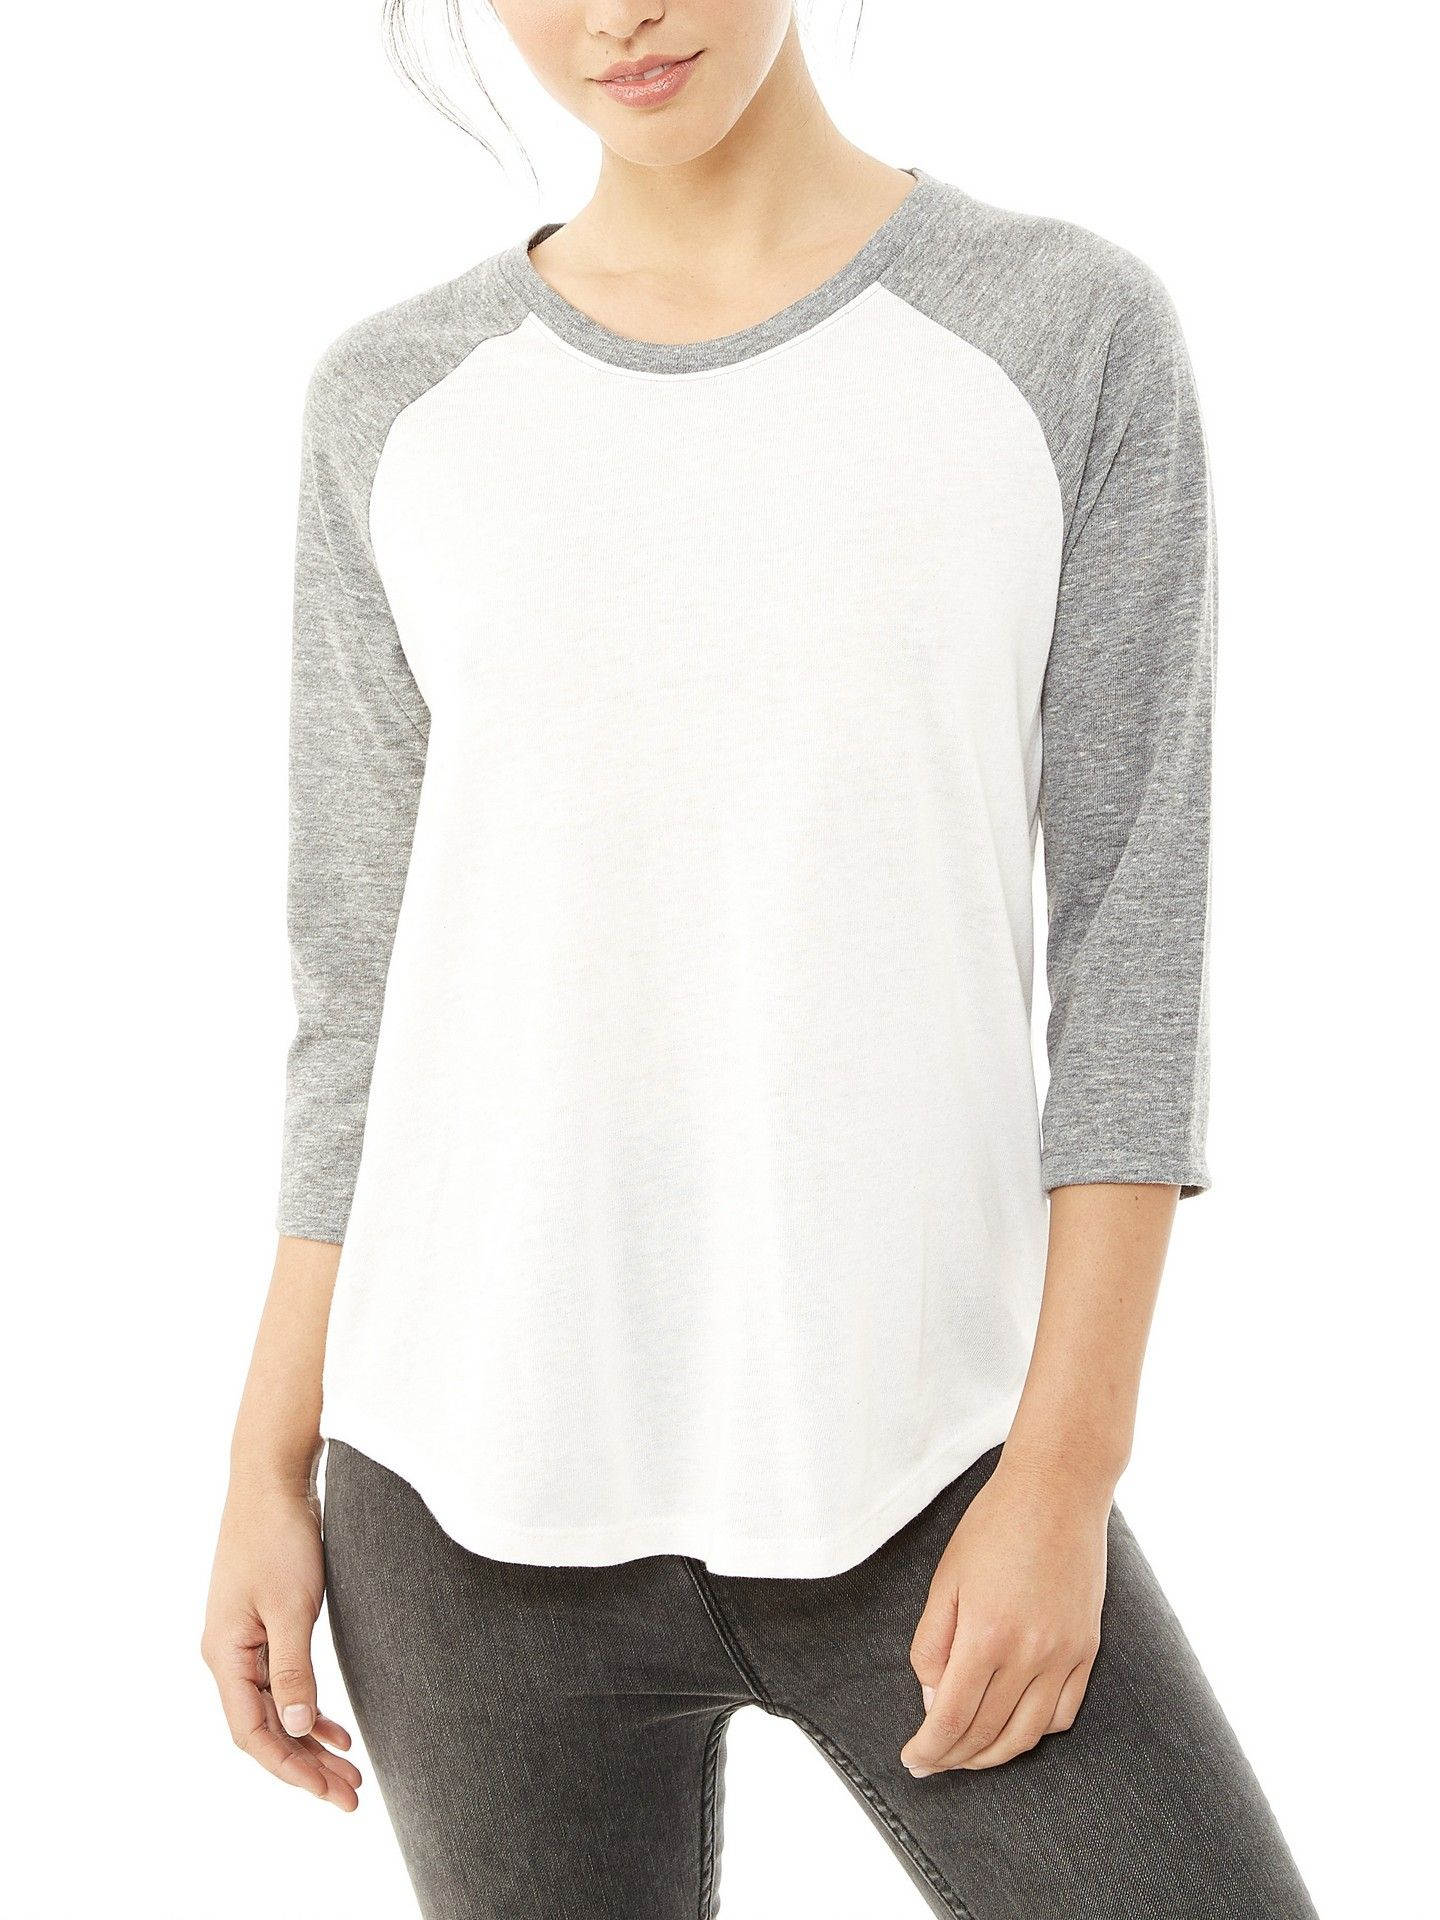 1ce2fbf2078c A men s inspired baseball tee made to fit for women. Crafted in our soft  Eco Jersey for ultimate comfort and casual look.